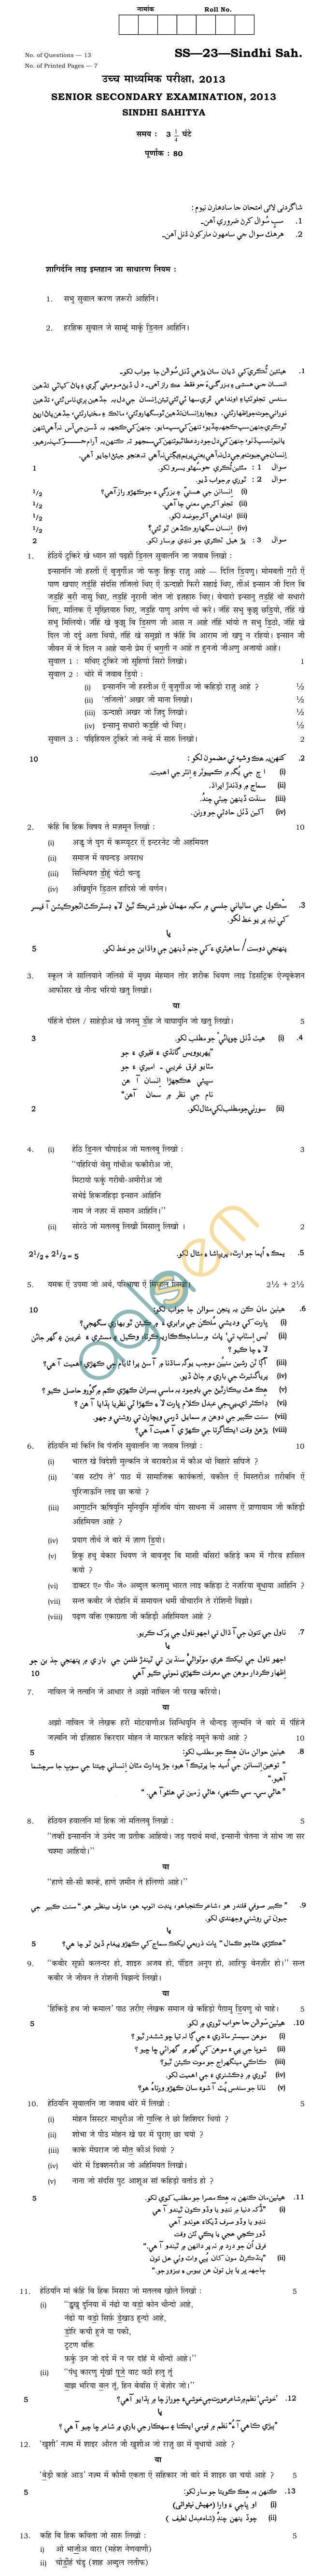 Rajasthan Board Sr. Secondary Sindhi Sahitya Question Paper 2013